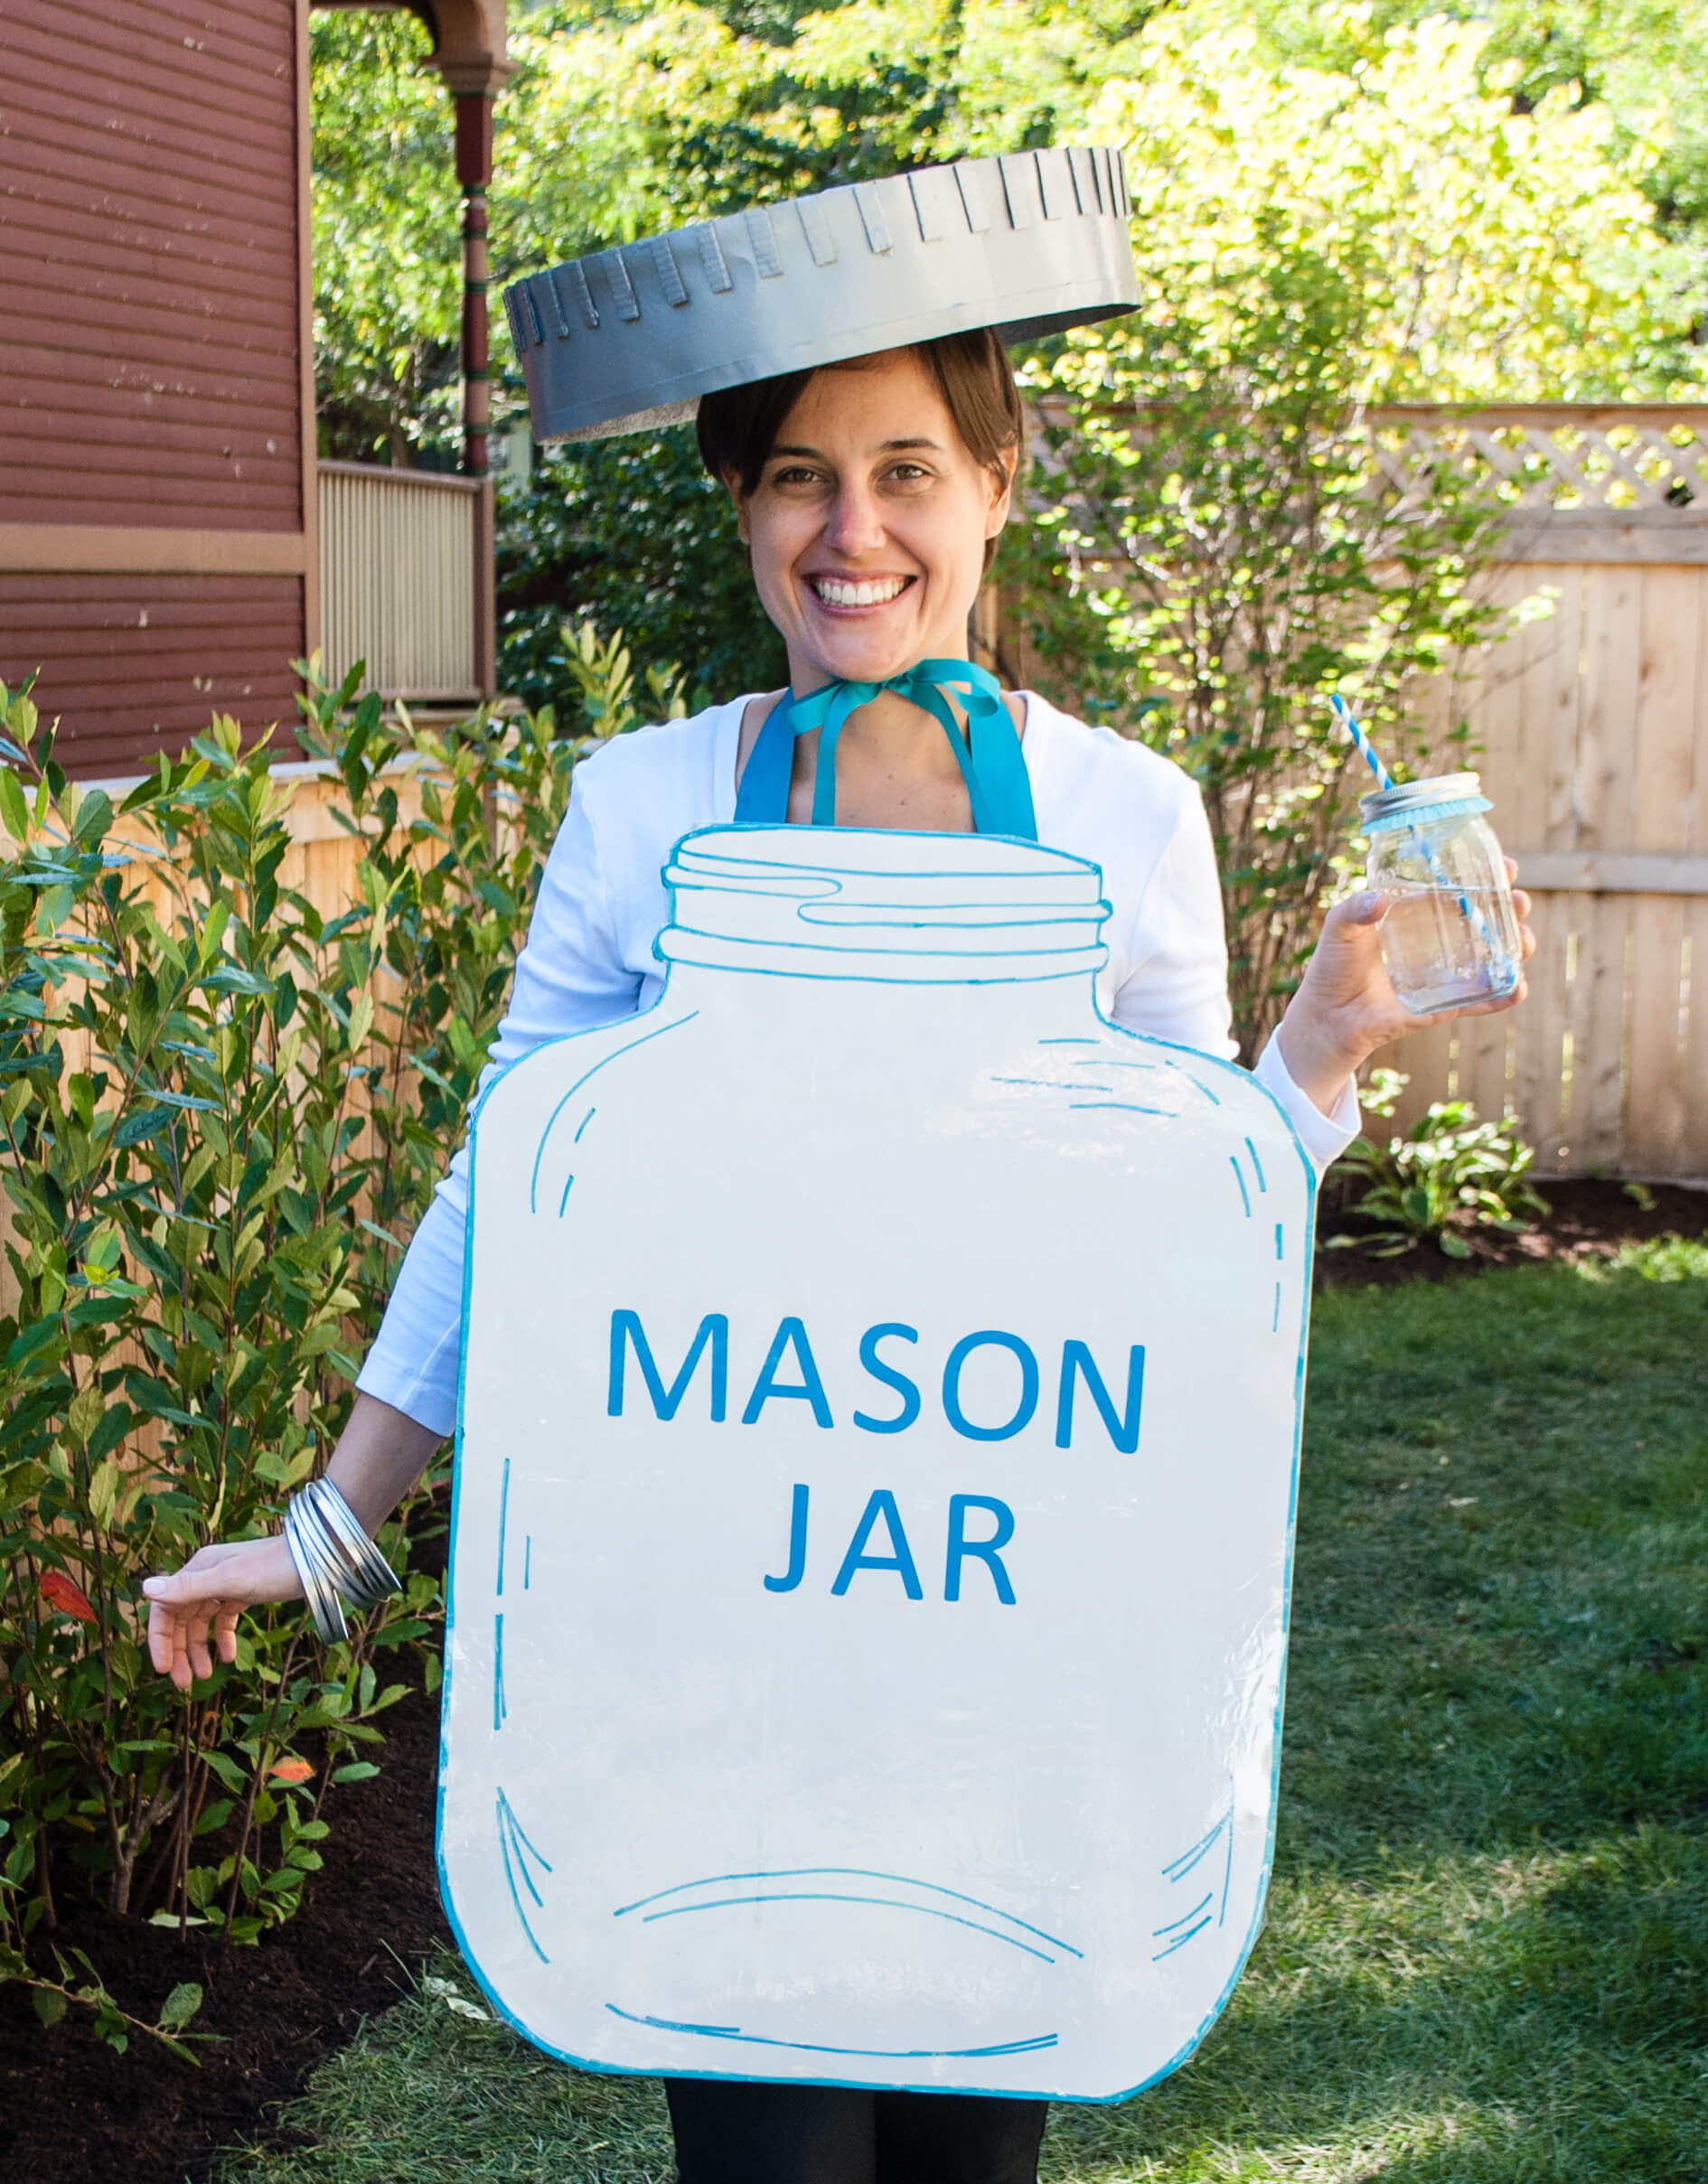 Easy DIY Halloween Costumes For Adults  Mason Jar Halloween Costume Easy DIY Halloween Costume